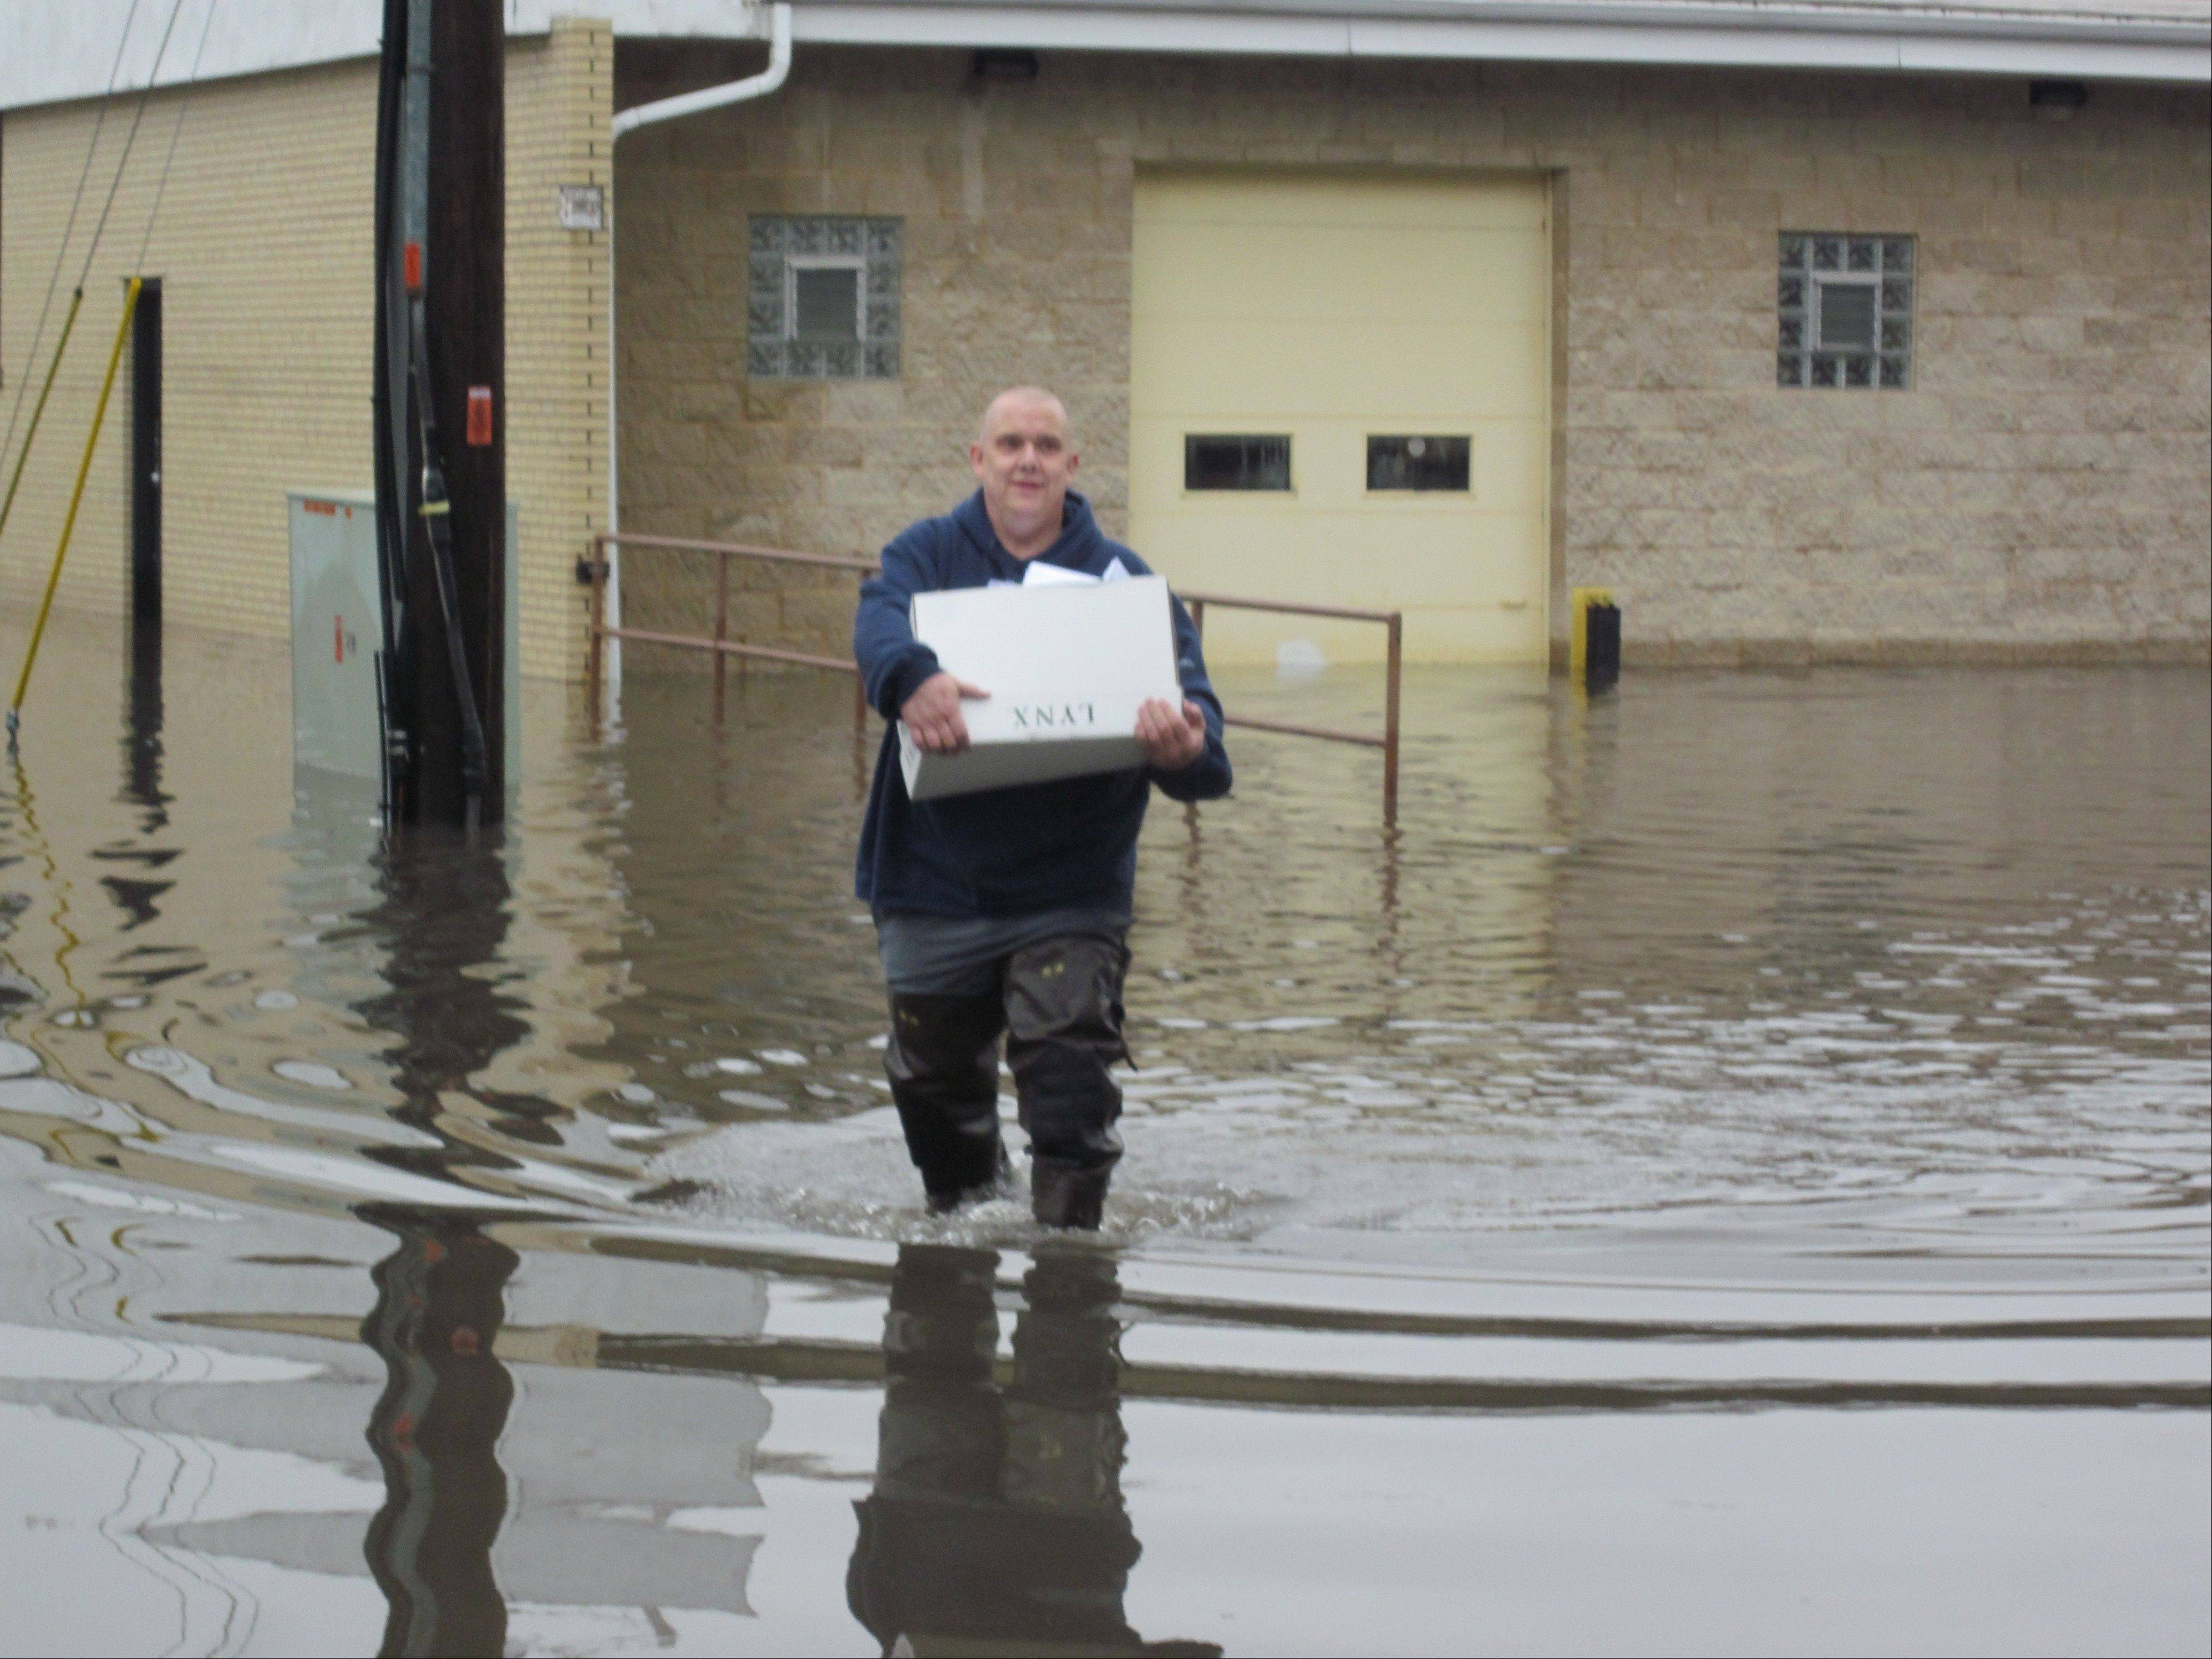 Ed Davidson, owner of CopySetCenter on Oakton Street in Des Plaines, carries part of a printing order out of his flooded business and across his flooded loading dock area to the waiting car of Jim Carlson of R.J. Printing in Mundelein.